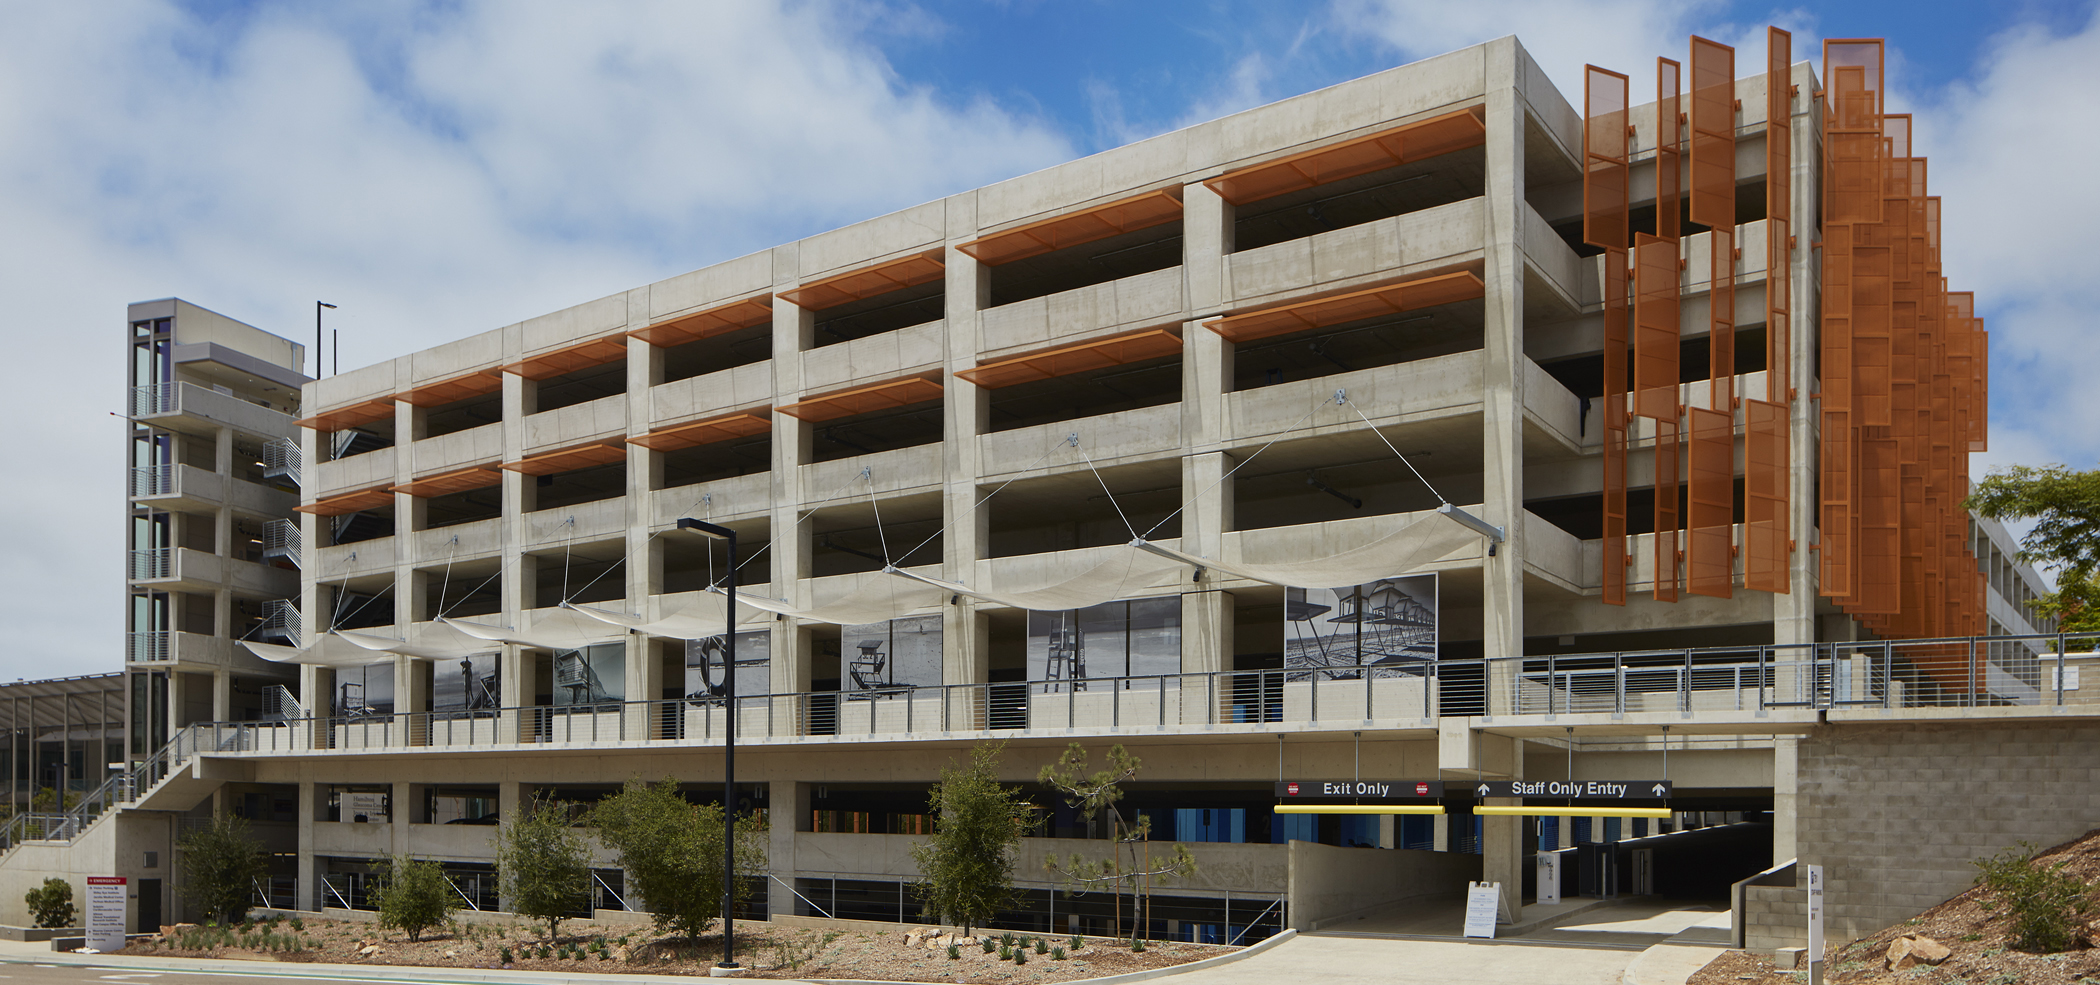 Uc San Diego Athena Parking Structure Ipd Ipd